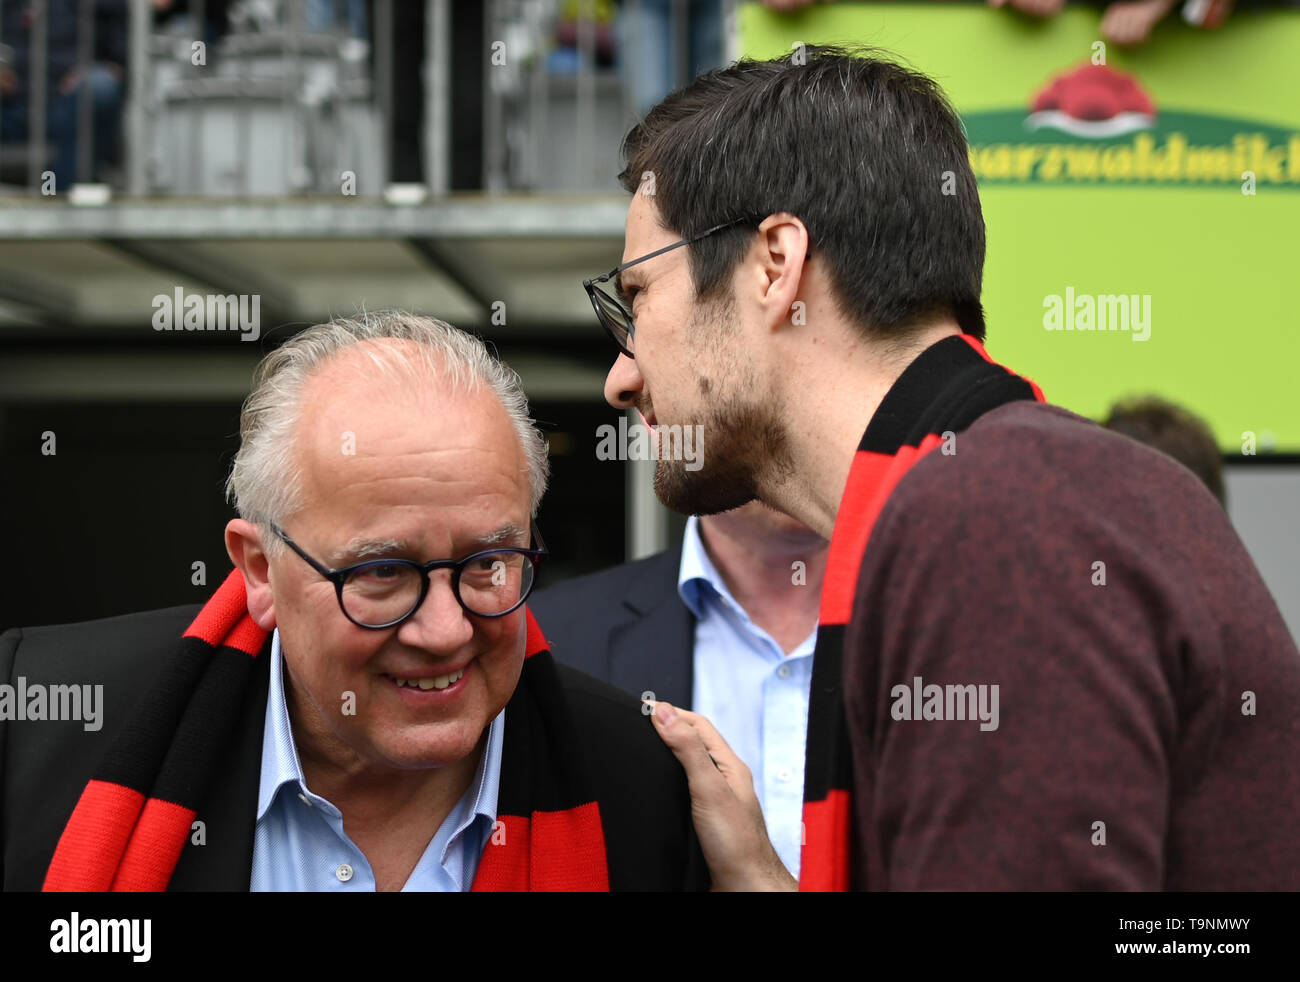 Freiburg, Germany. 18th May, 2019. Soccer: Bundesliga, SC Freiburg - 1st FC Nuremberg, 34th matchday in the Schwarzwaldstadion. Martin Horn (r), Lord Mayor of Freiburg, talks to Fritz Keller, President of SC Freiburg, before the match. Credit: Patrick Seeger/dpa - Use only after contractual agreement/dpa/Alamy Live News - Stock Image